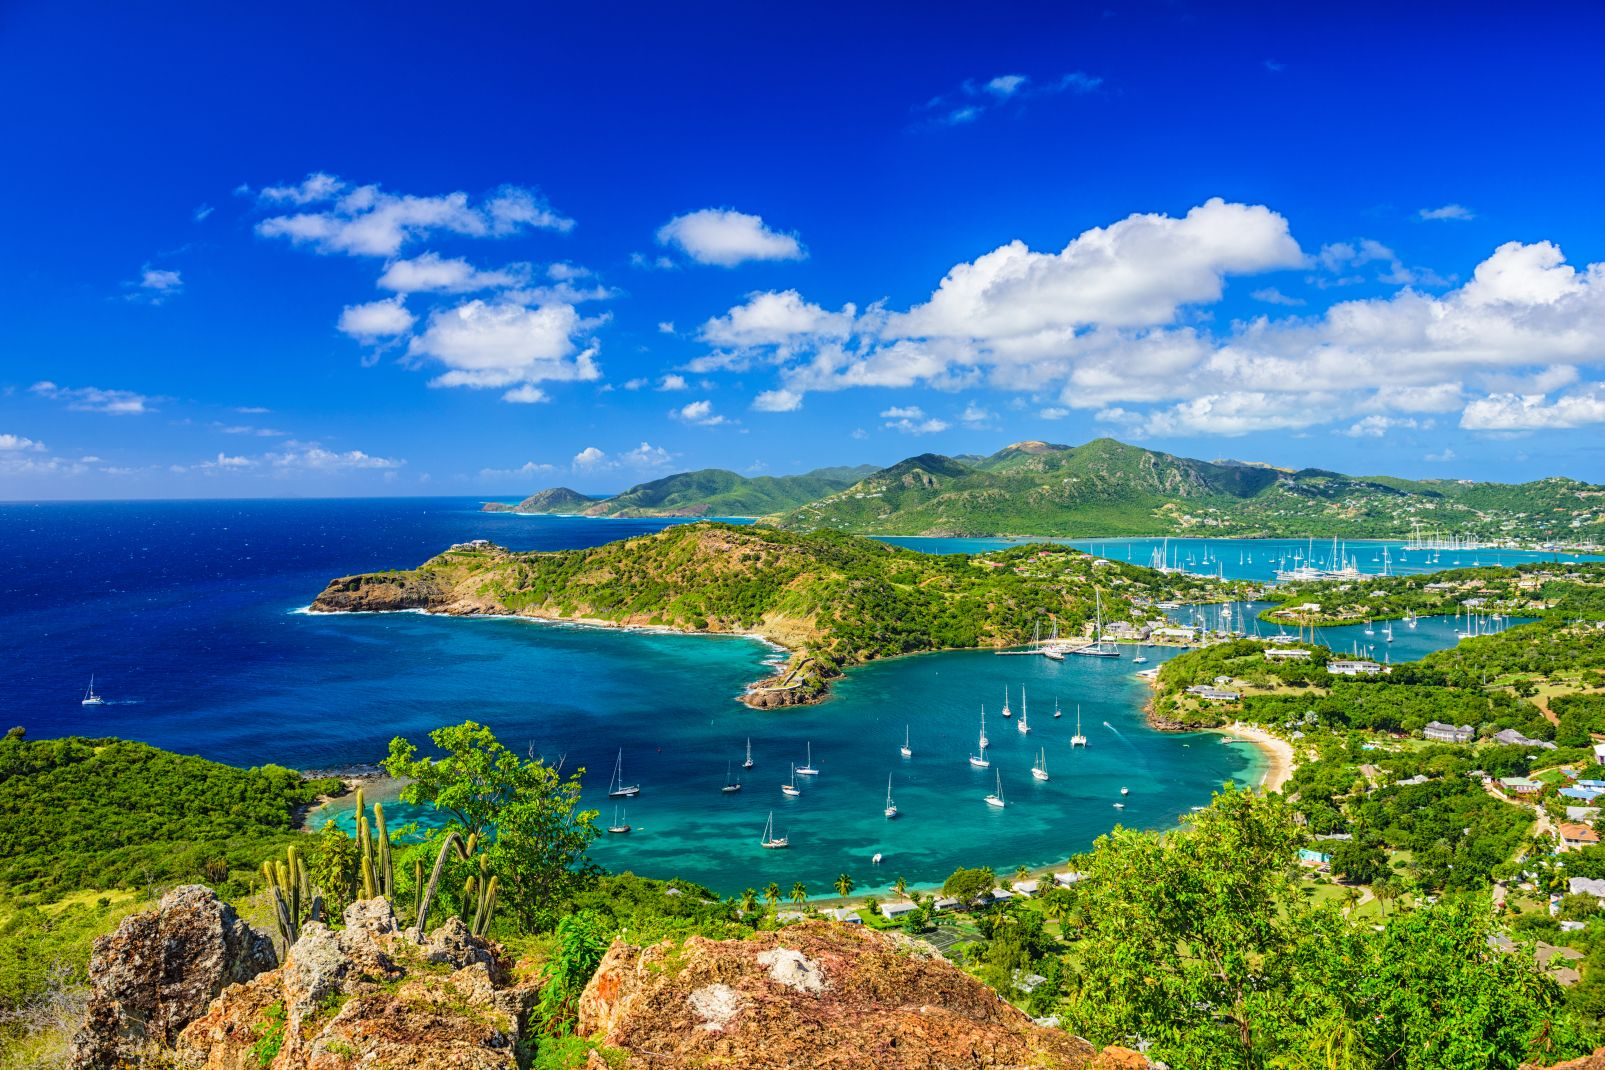 antigua and barbuda Homepage of the most romantic of antigua hotels and resorts-cocobay is your ideal spot for a relaxing antigua vacation we are an all inclusive antigua resort, offering first class service and great value for money.